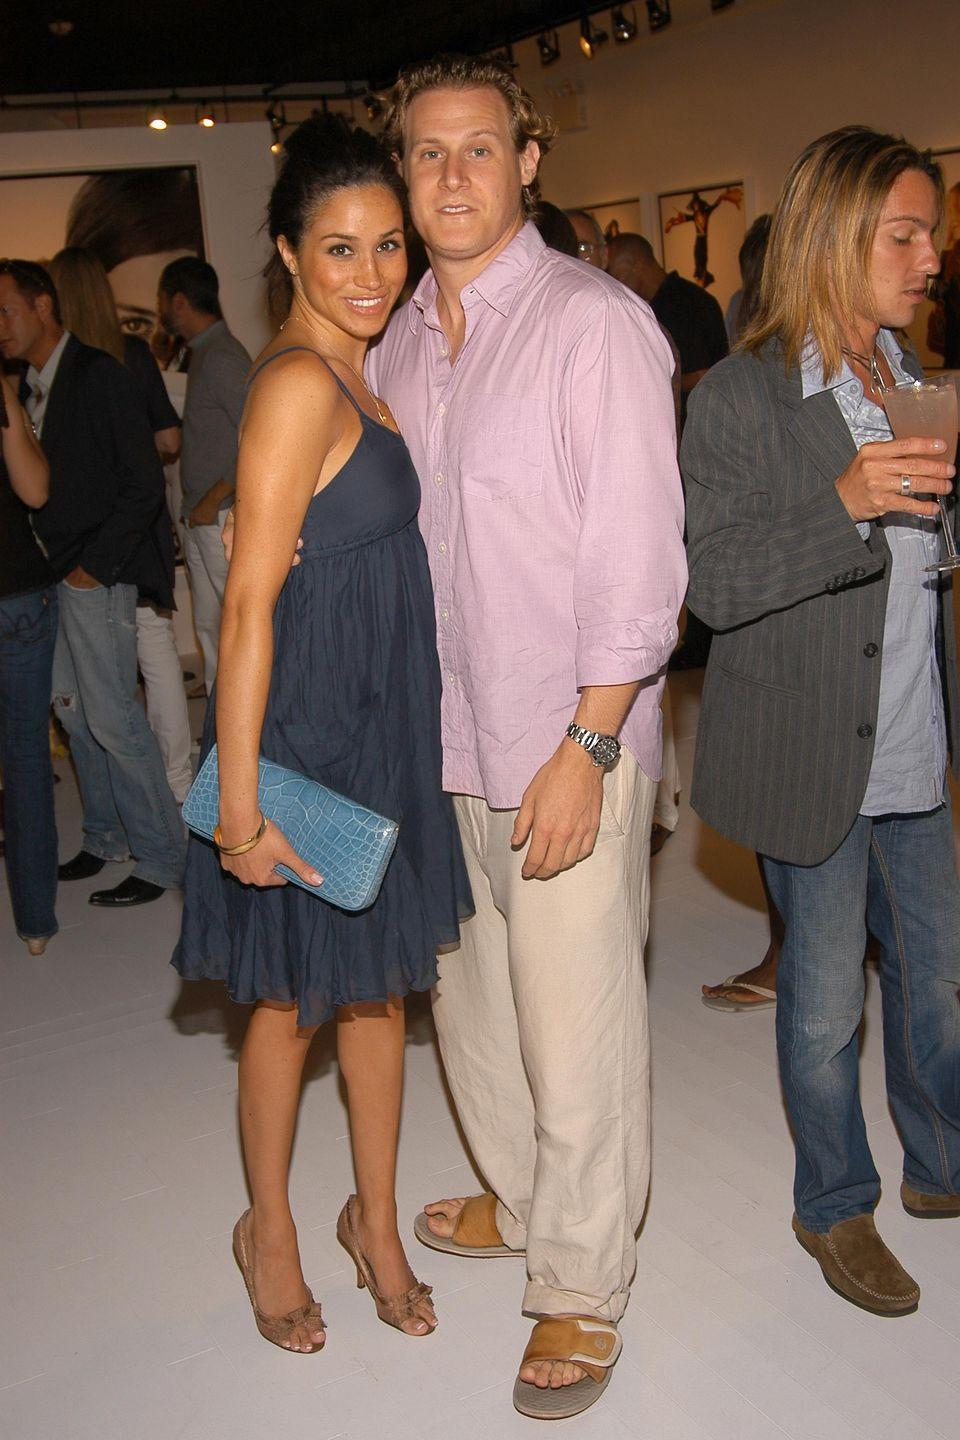 <p>In case you hadn't heard, Markle was married to Engelson, an American actor and producer, from 2011 to 2013. The two dated for almost seven years before tying the knot, but sadly divorced a few years after they made it official.</p>